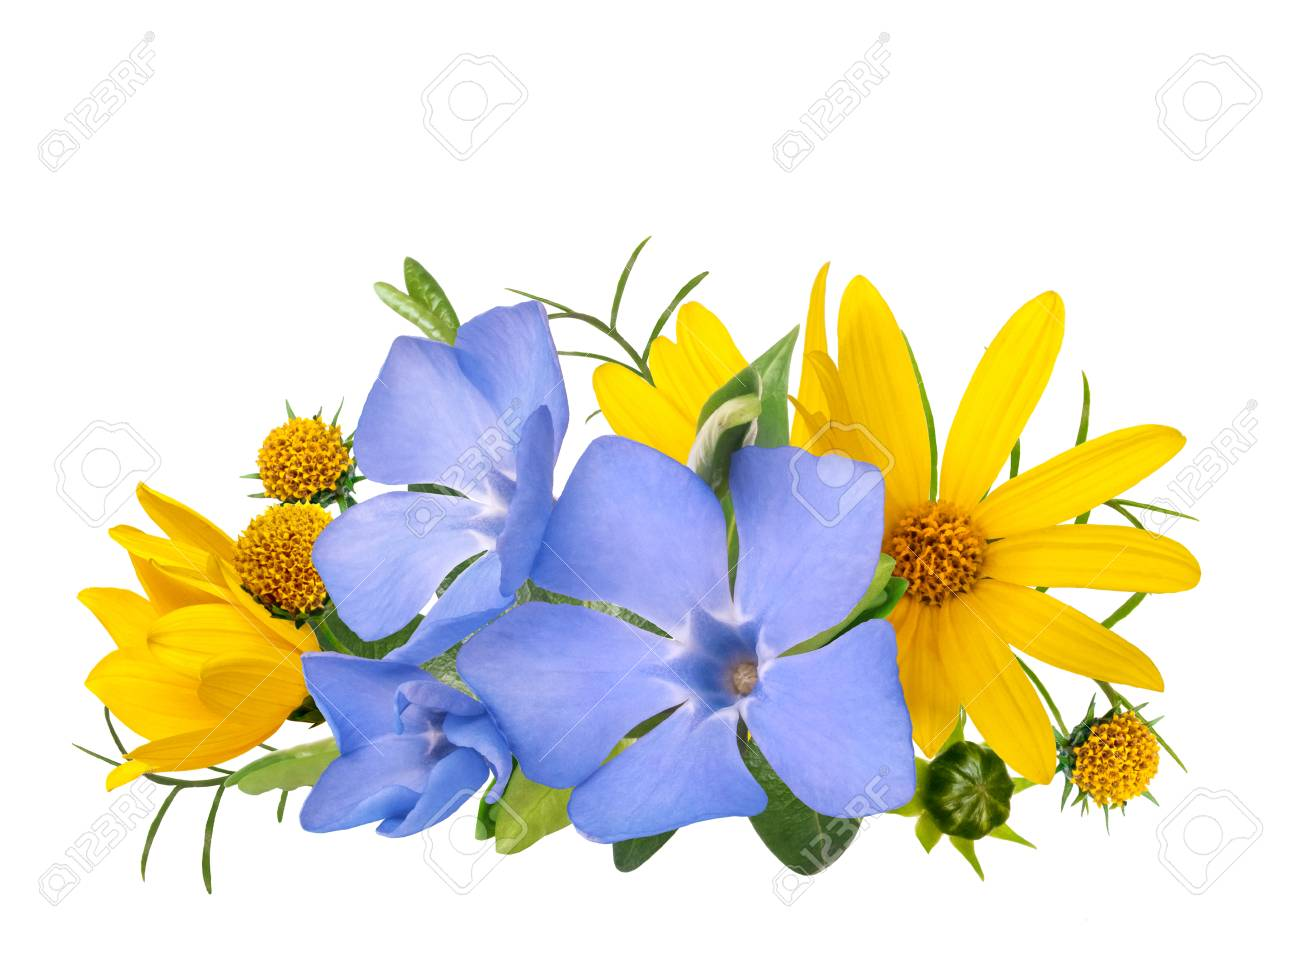 Yellow And Blue Wild Primrose Flowers Bouquet Isolated On White